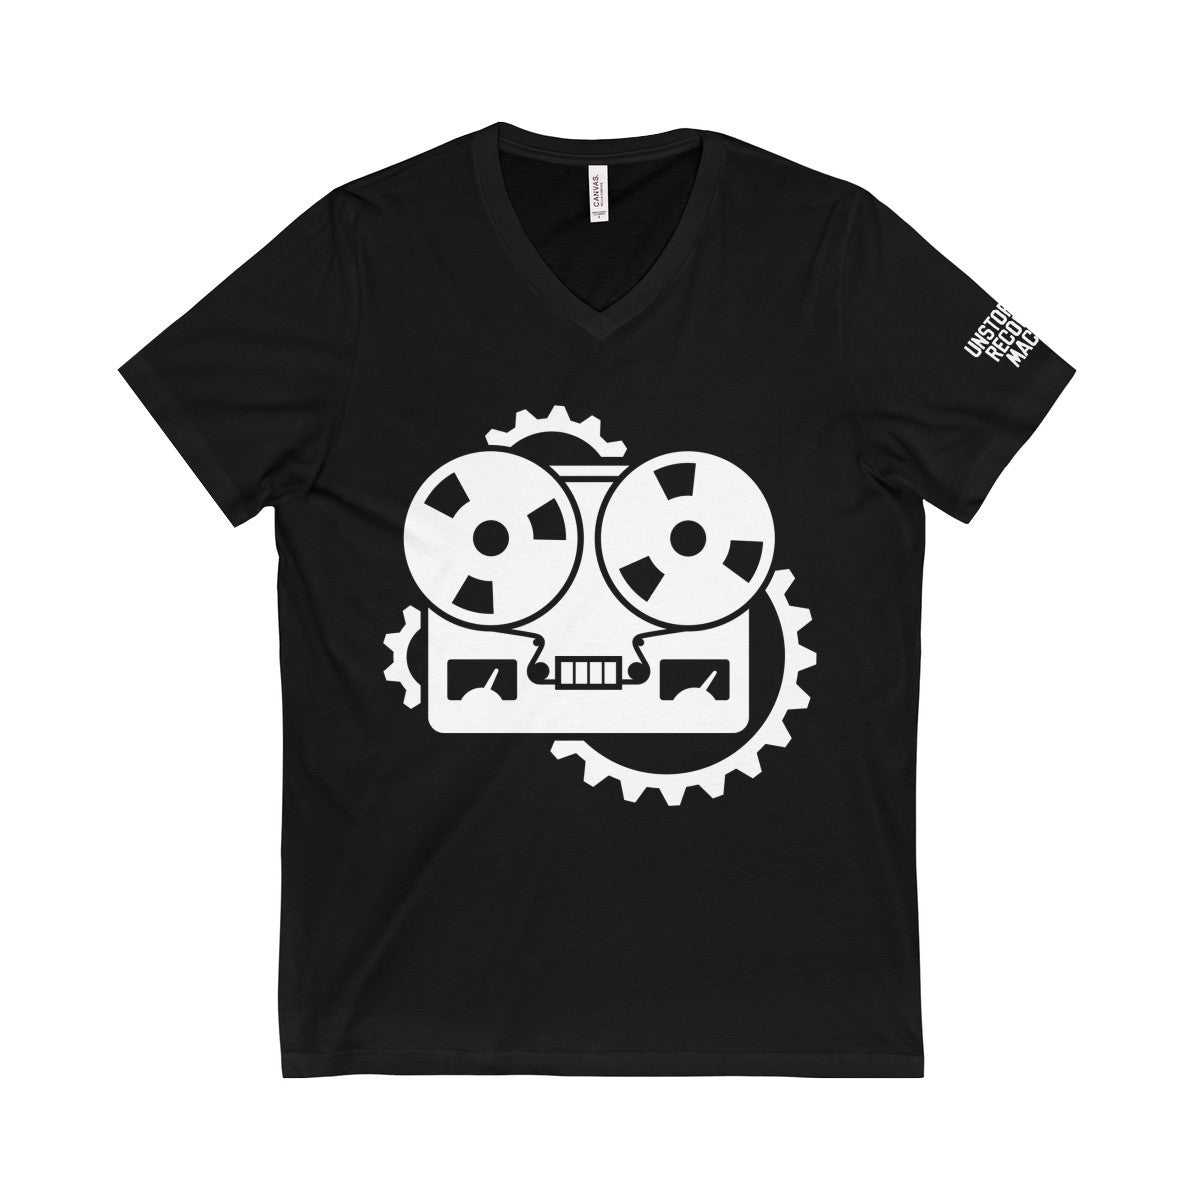 URM Tape Machine V-Neck Tee, White Print